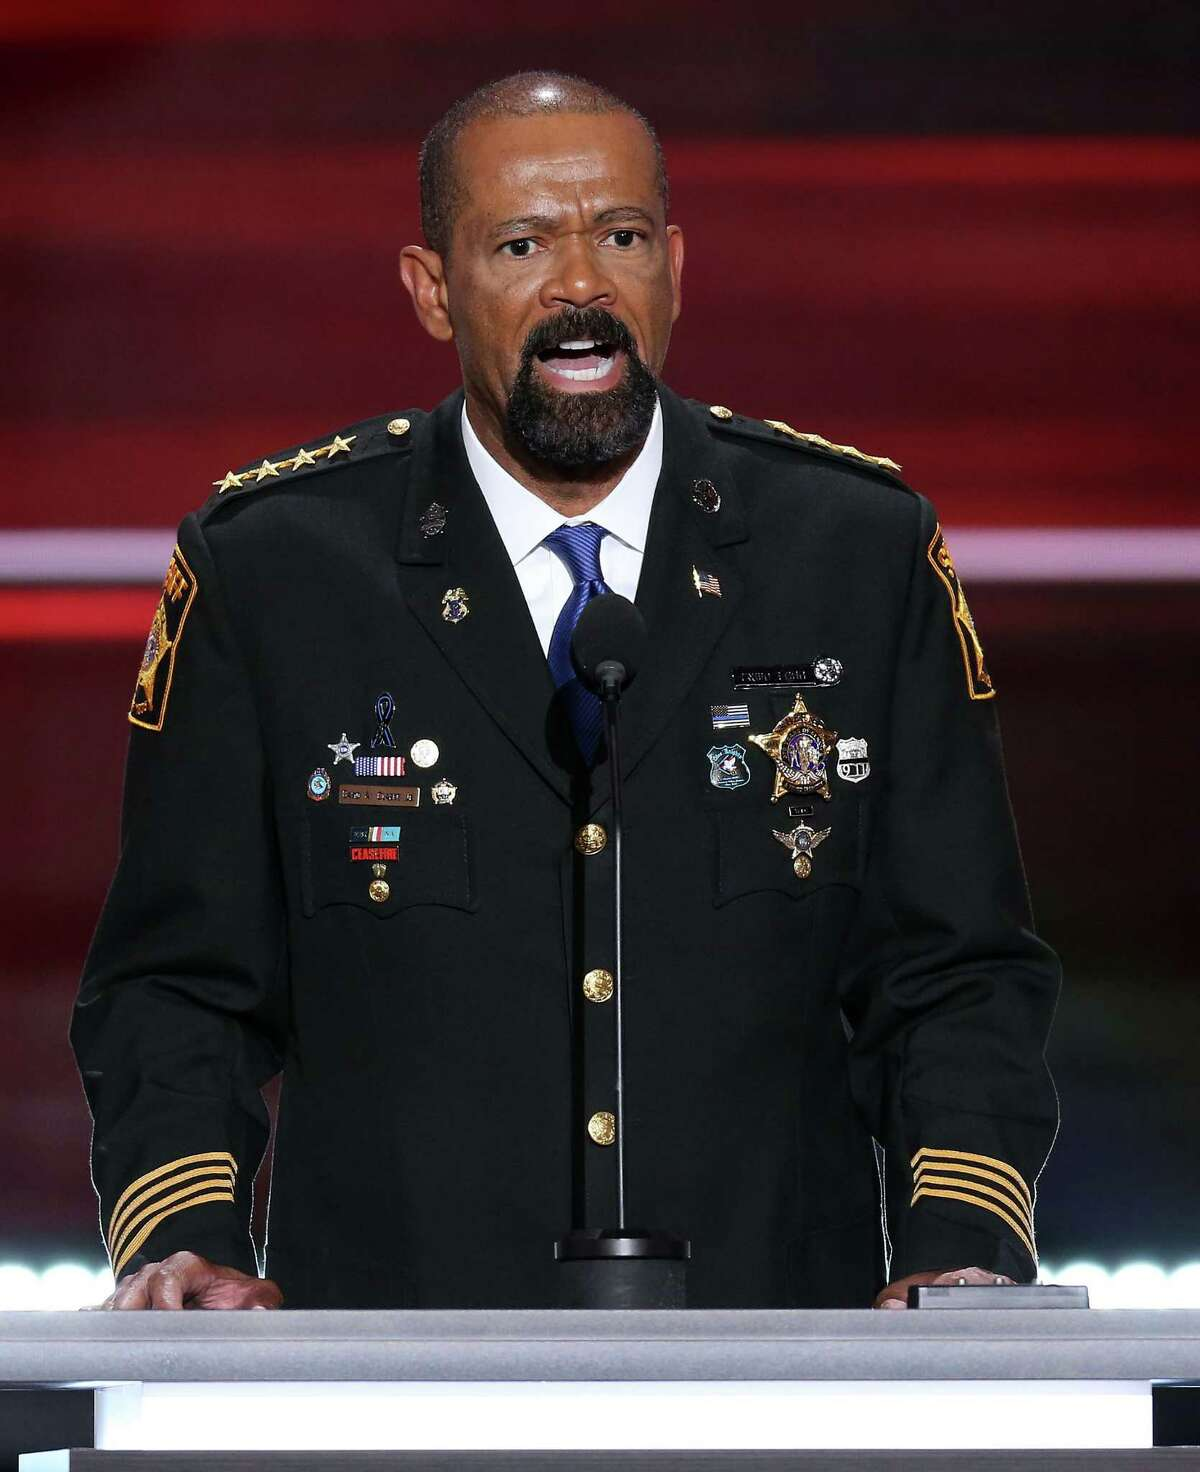 Milwaukee County Sheriff David A. Clarke Jr. speaks during the Republican National Convention in Cleveland, Ohio, July 18.